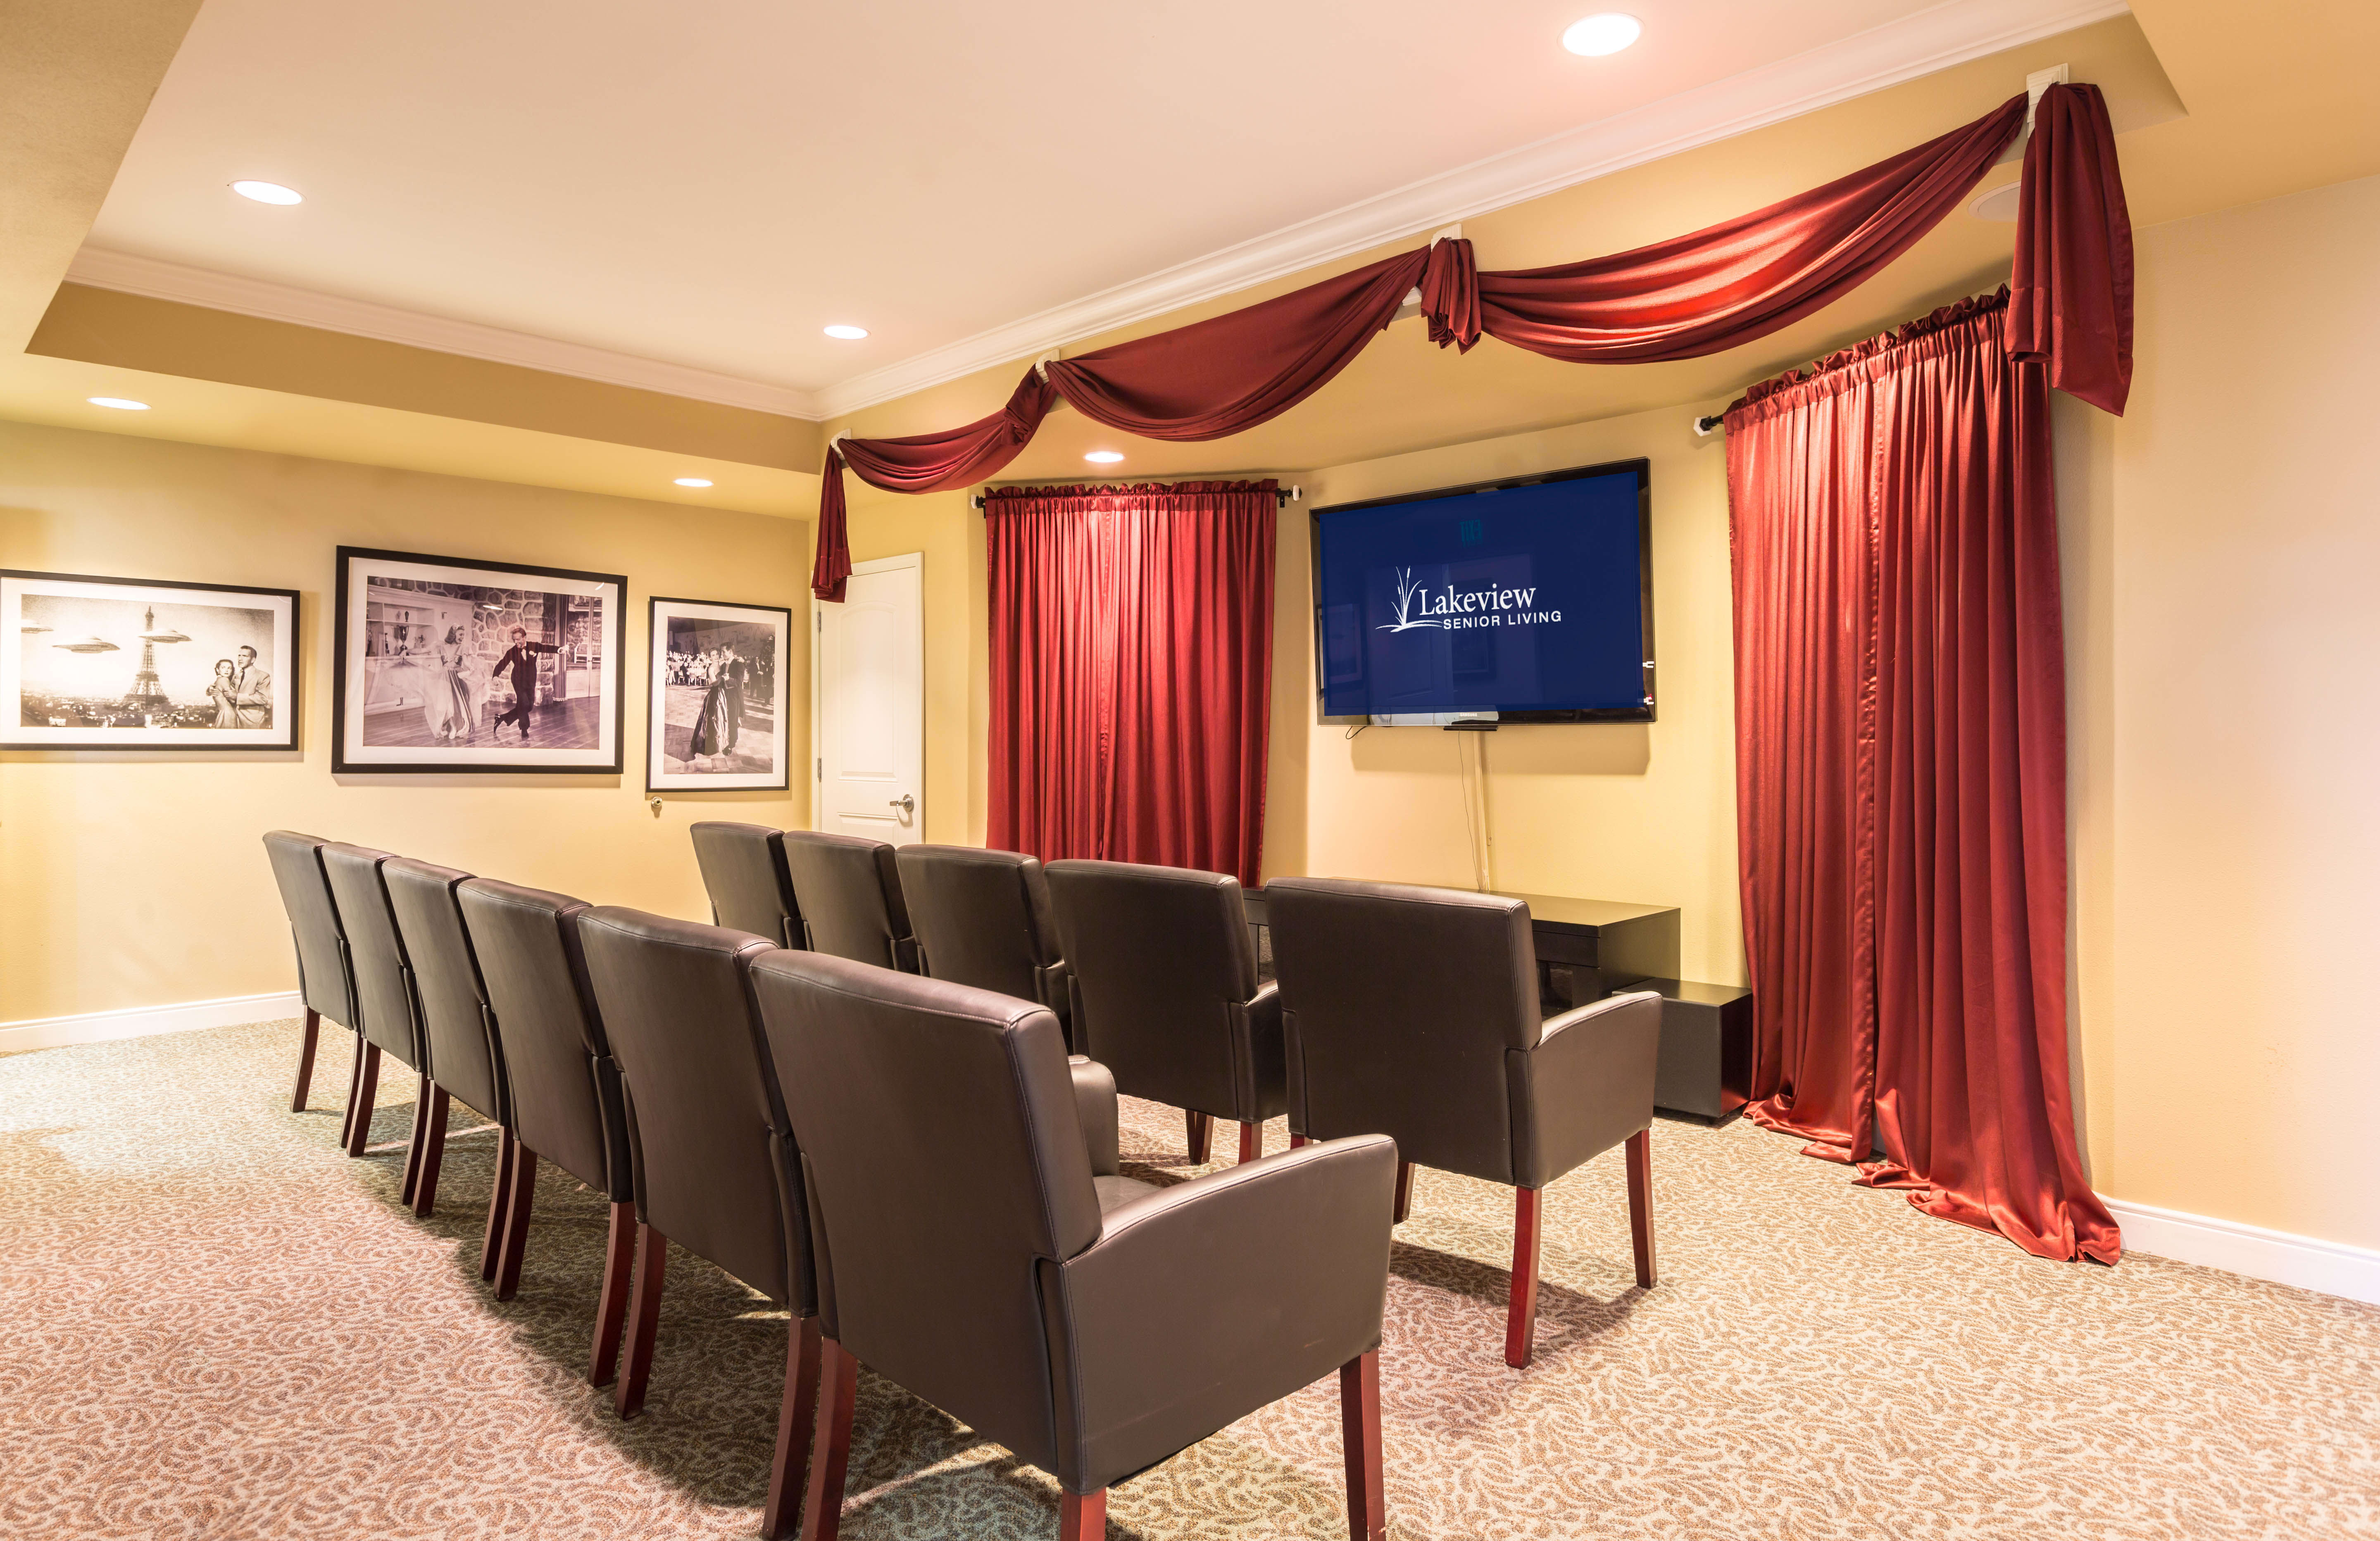 Theater showing movies at Lakeview Senior Living